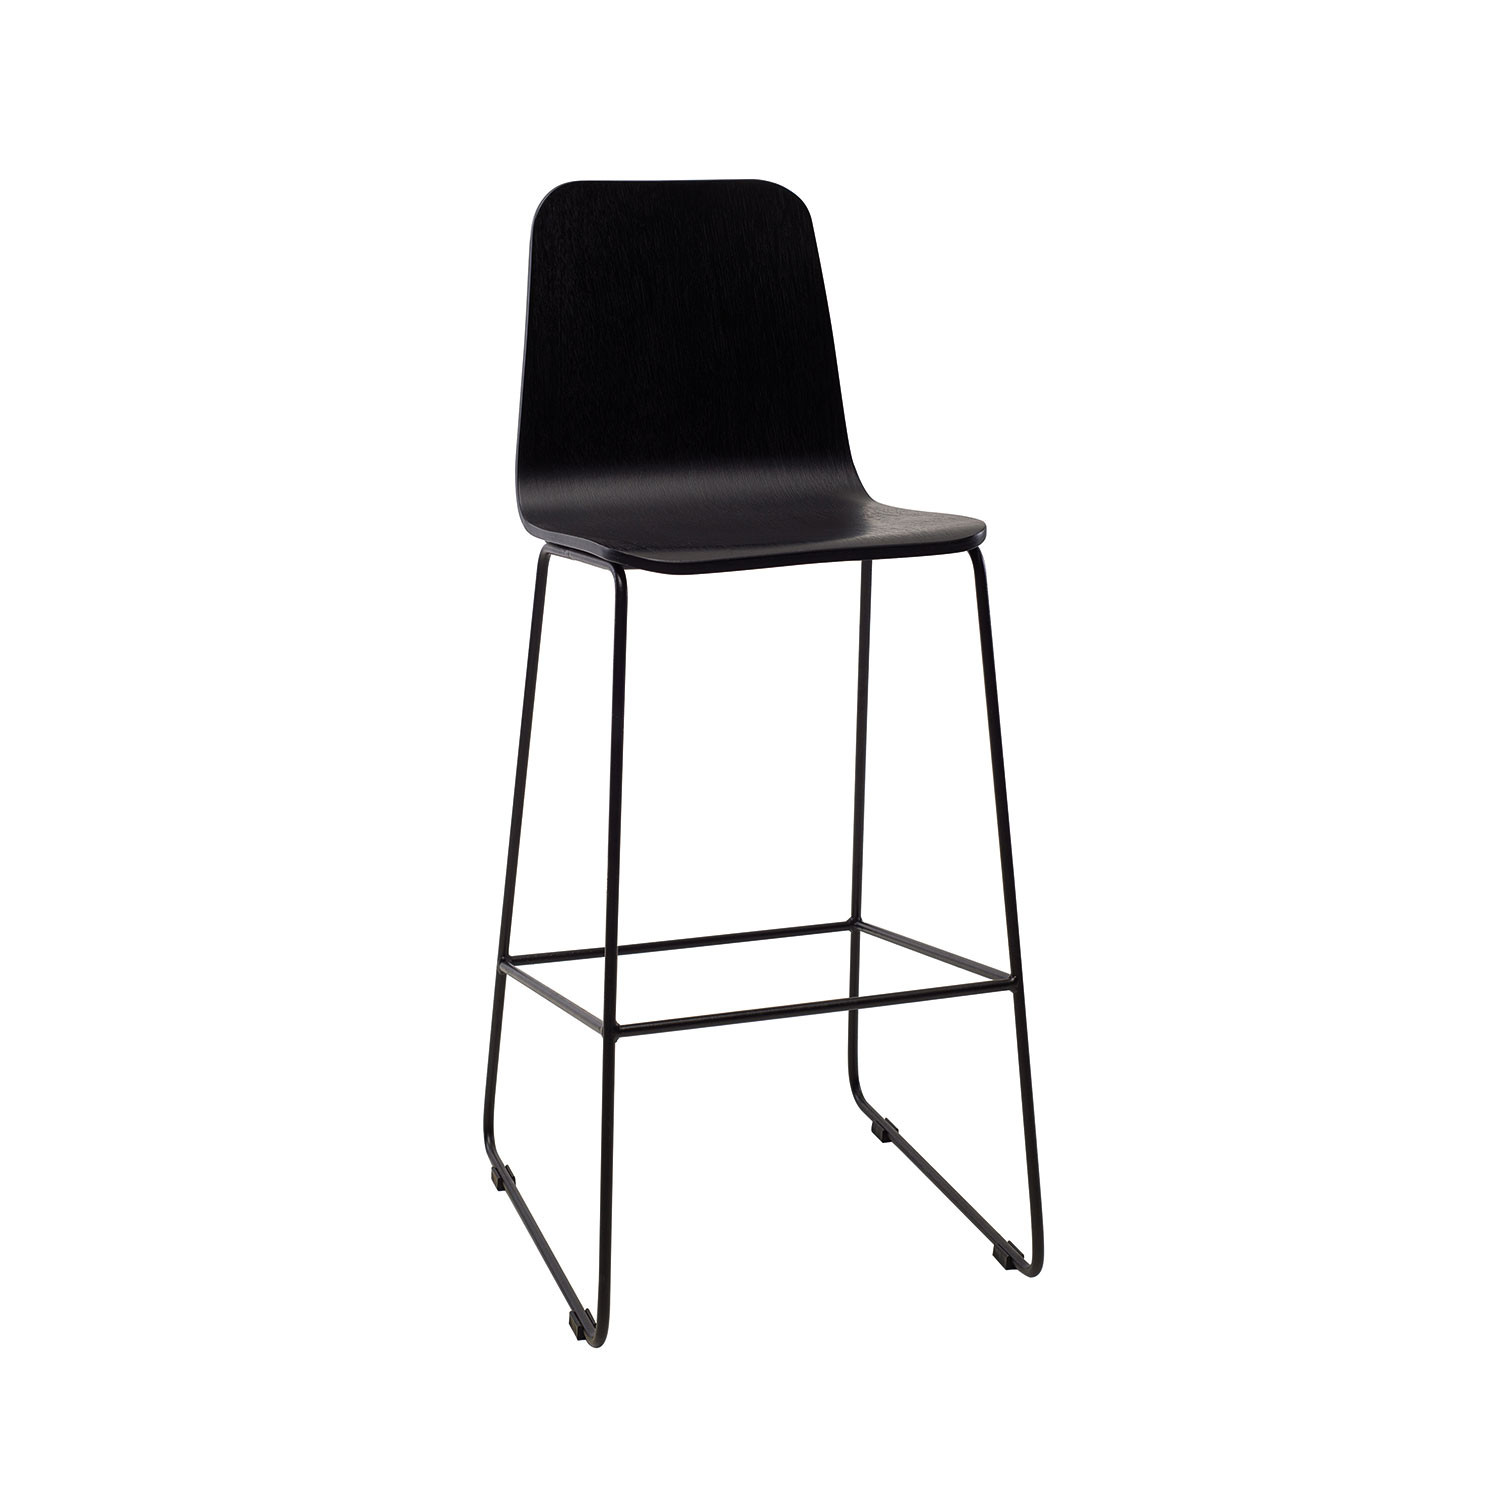 Phenomenal Agnes High Back Barstool Black Ash Urbn Touch Of Modern Gamerscity Chair Design For Home Gamerscityorg